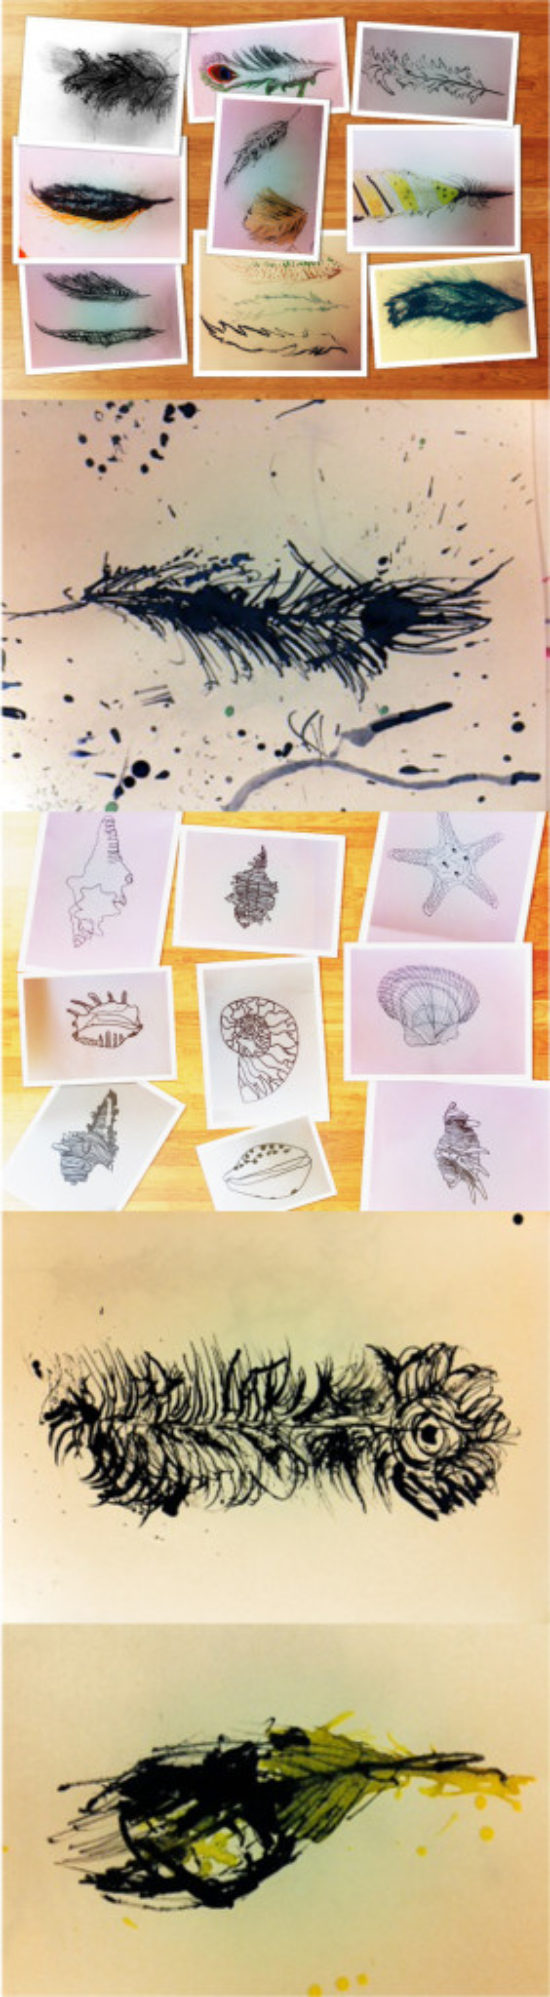 I am an art teacher in Kent who used the drawing challenge with children ranging from the ages of 8-11. For the feather drawings we used sticks and drawing inks which was challenging to control but produced some sensitive results.